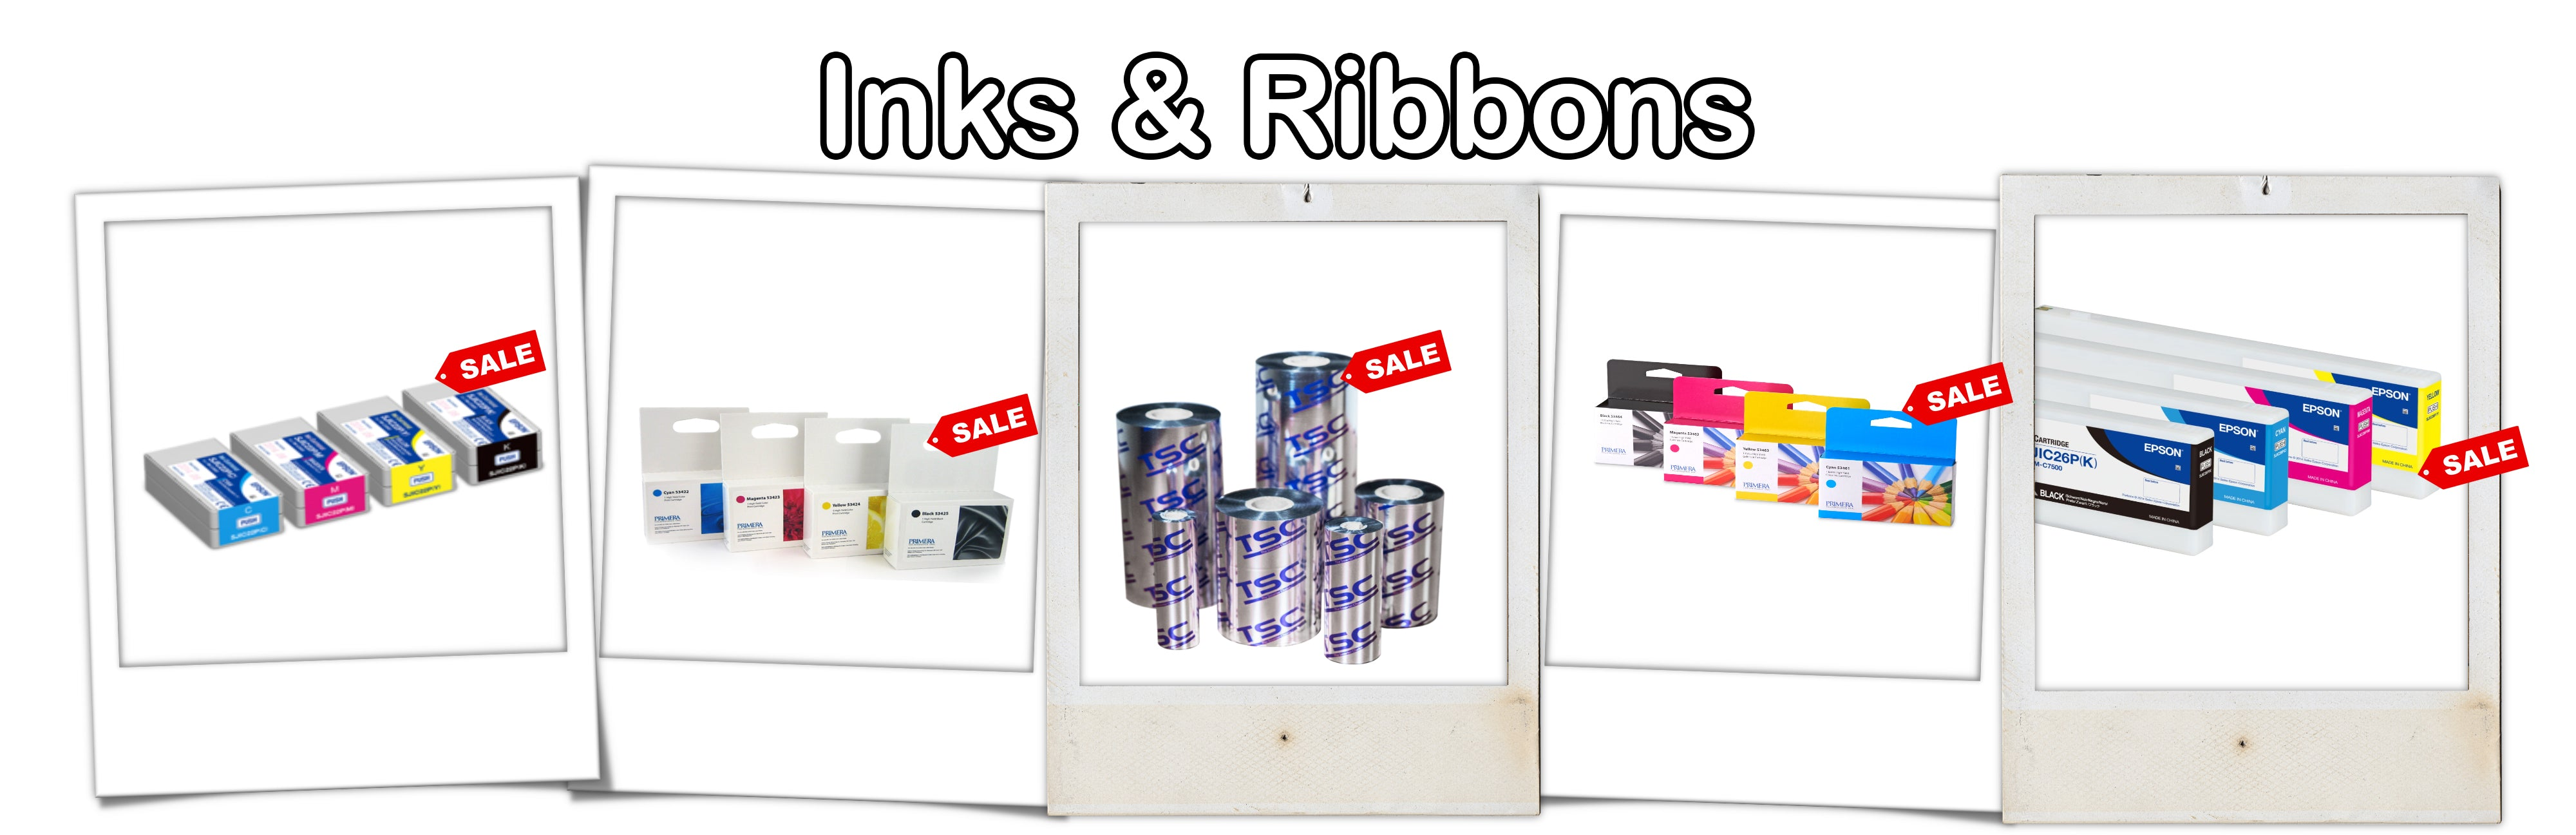 ForeFront Label Solutions Inks & Ribbons Sale